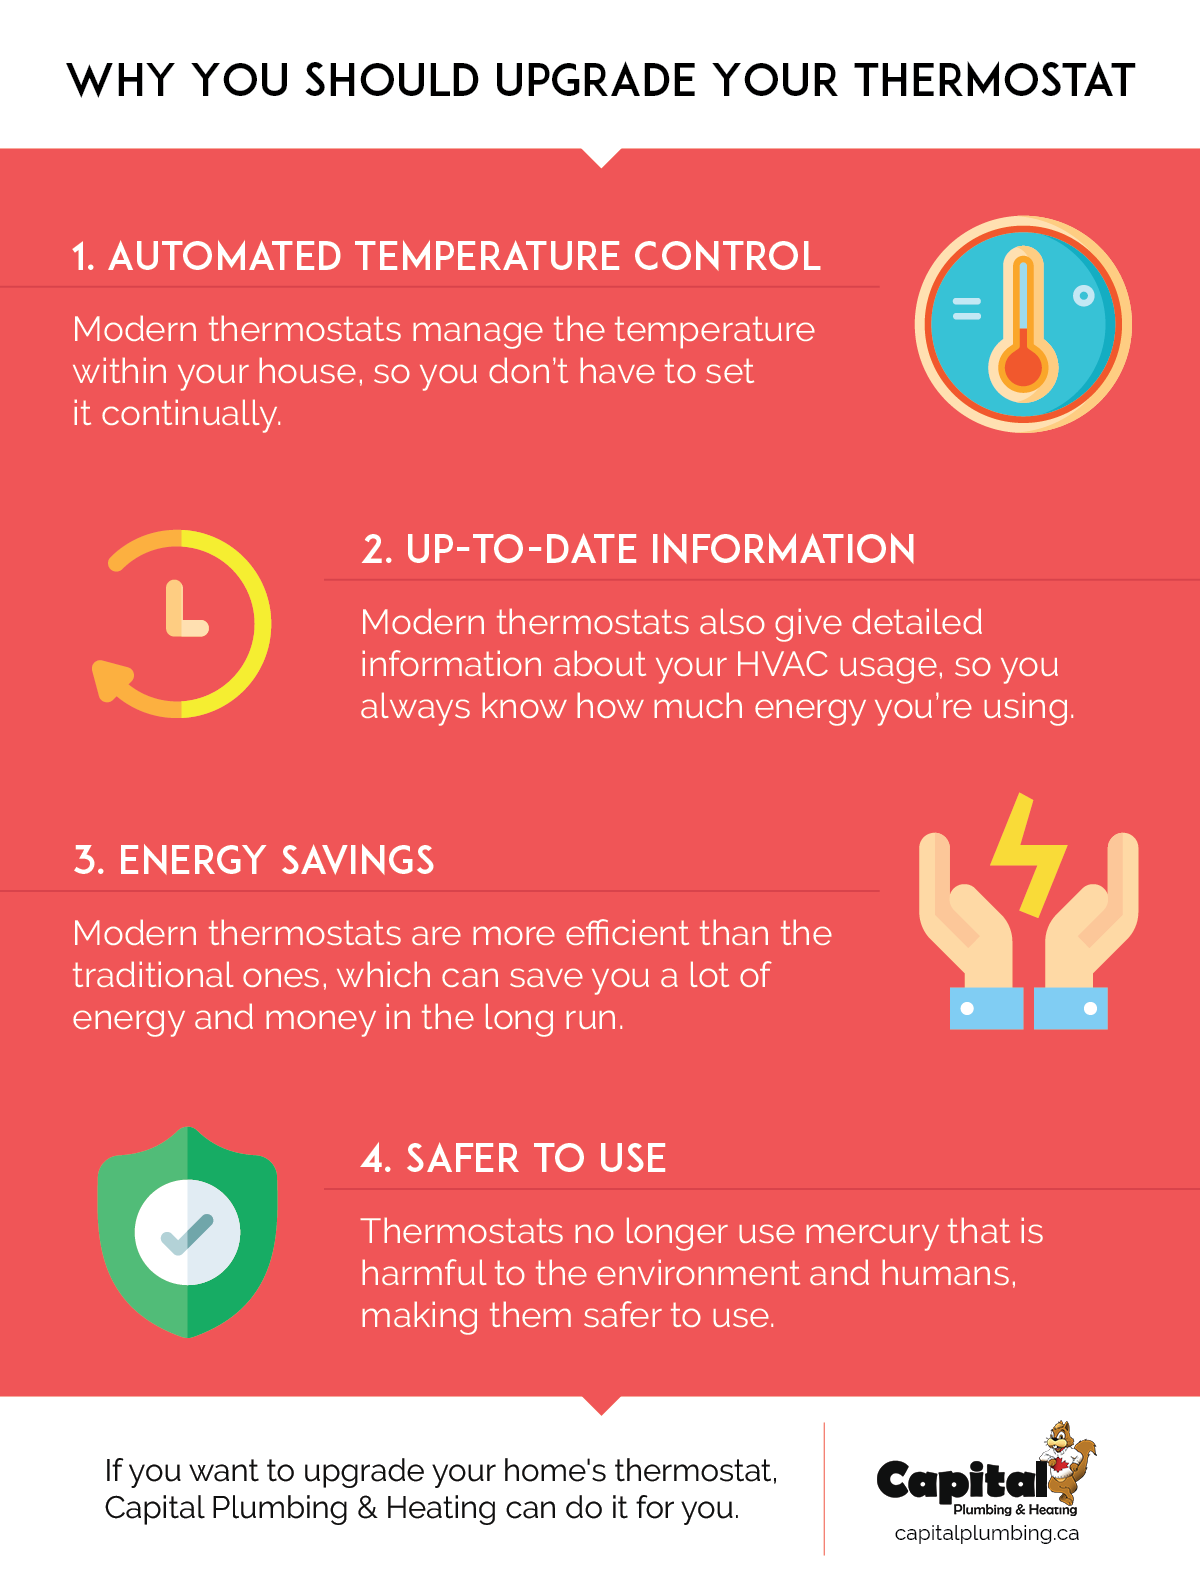 You Should Upgrade Your Thermostat